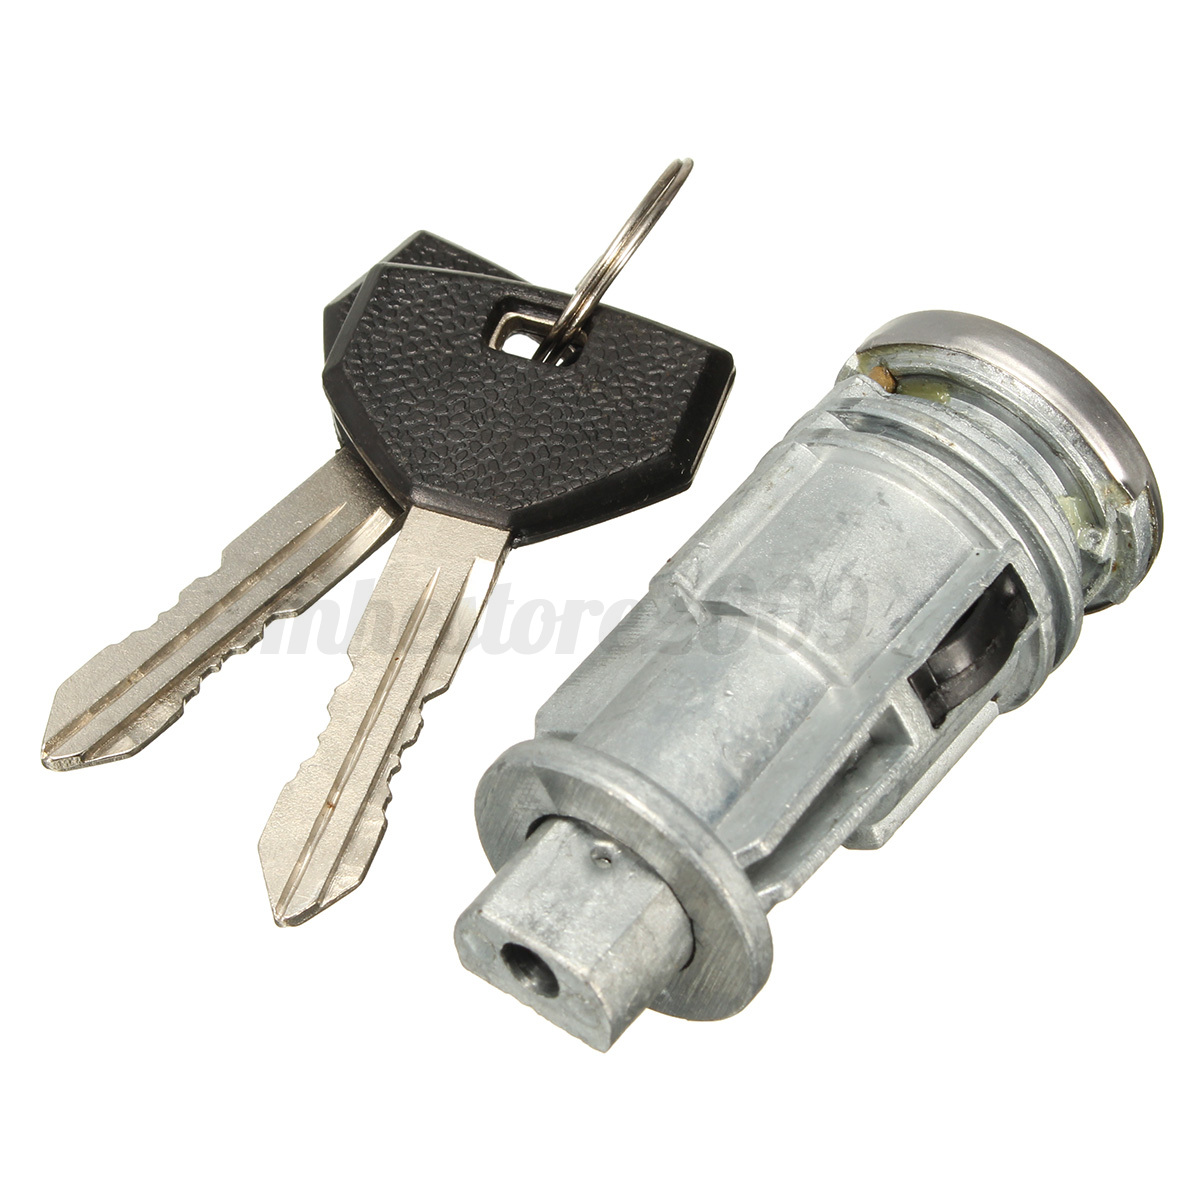 5003843AB Ignition Key Switch Lock Cylinder With 2 Key For